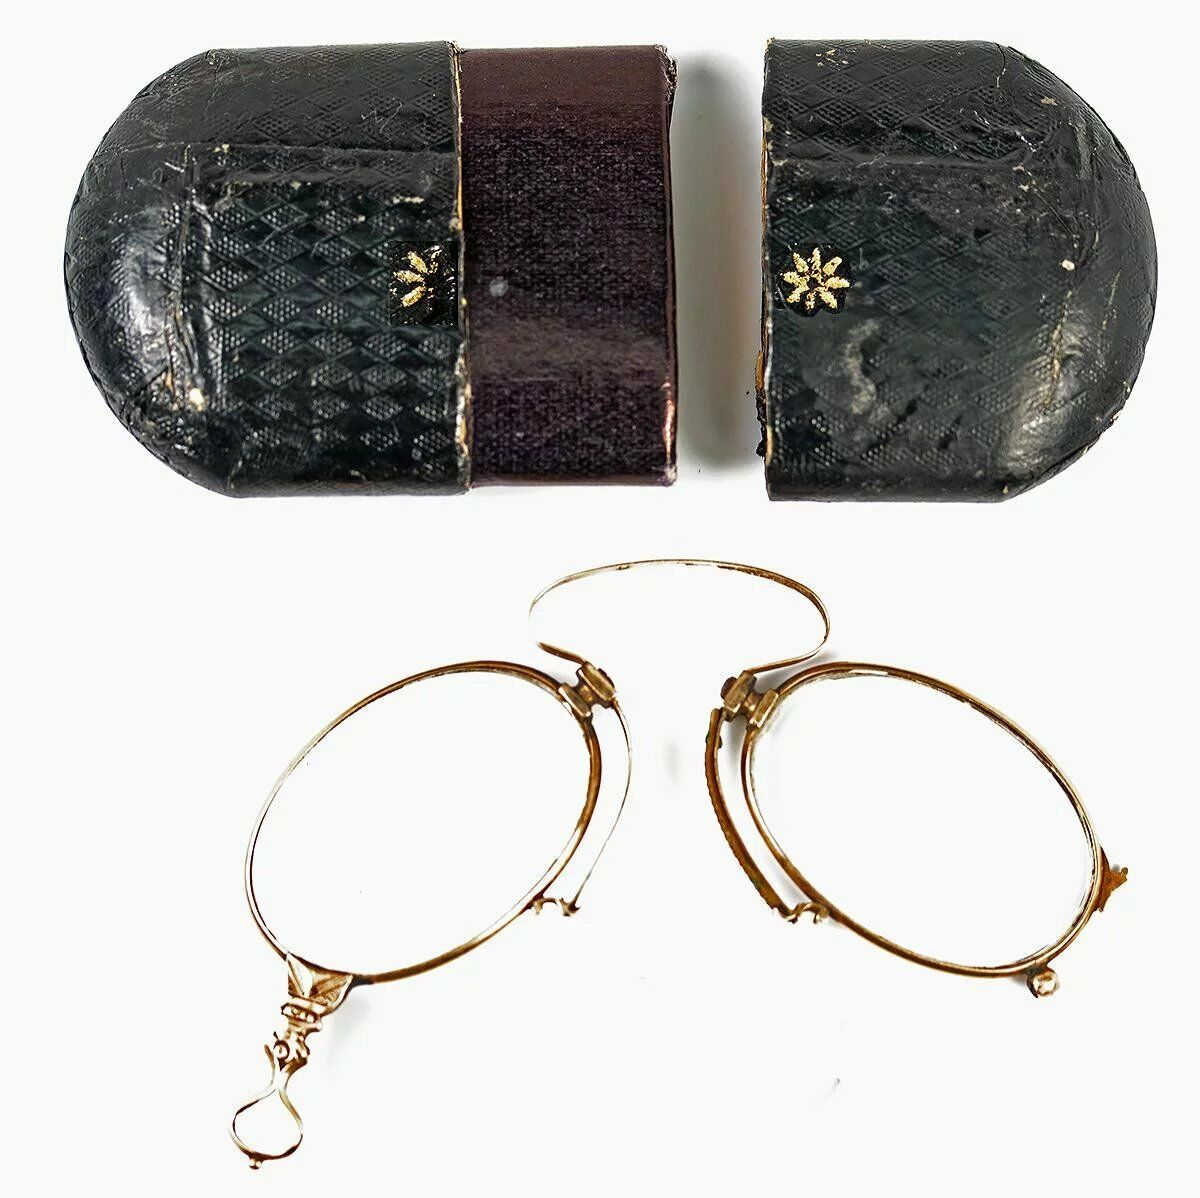 Antique 14K Gold Folding Spectacles, Pince Nez Reading Glasses and Case, c.1880s